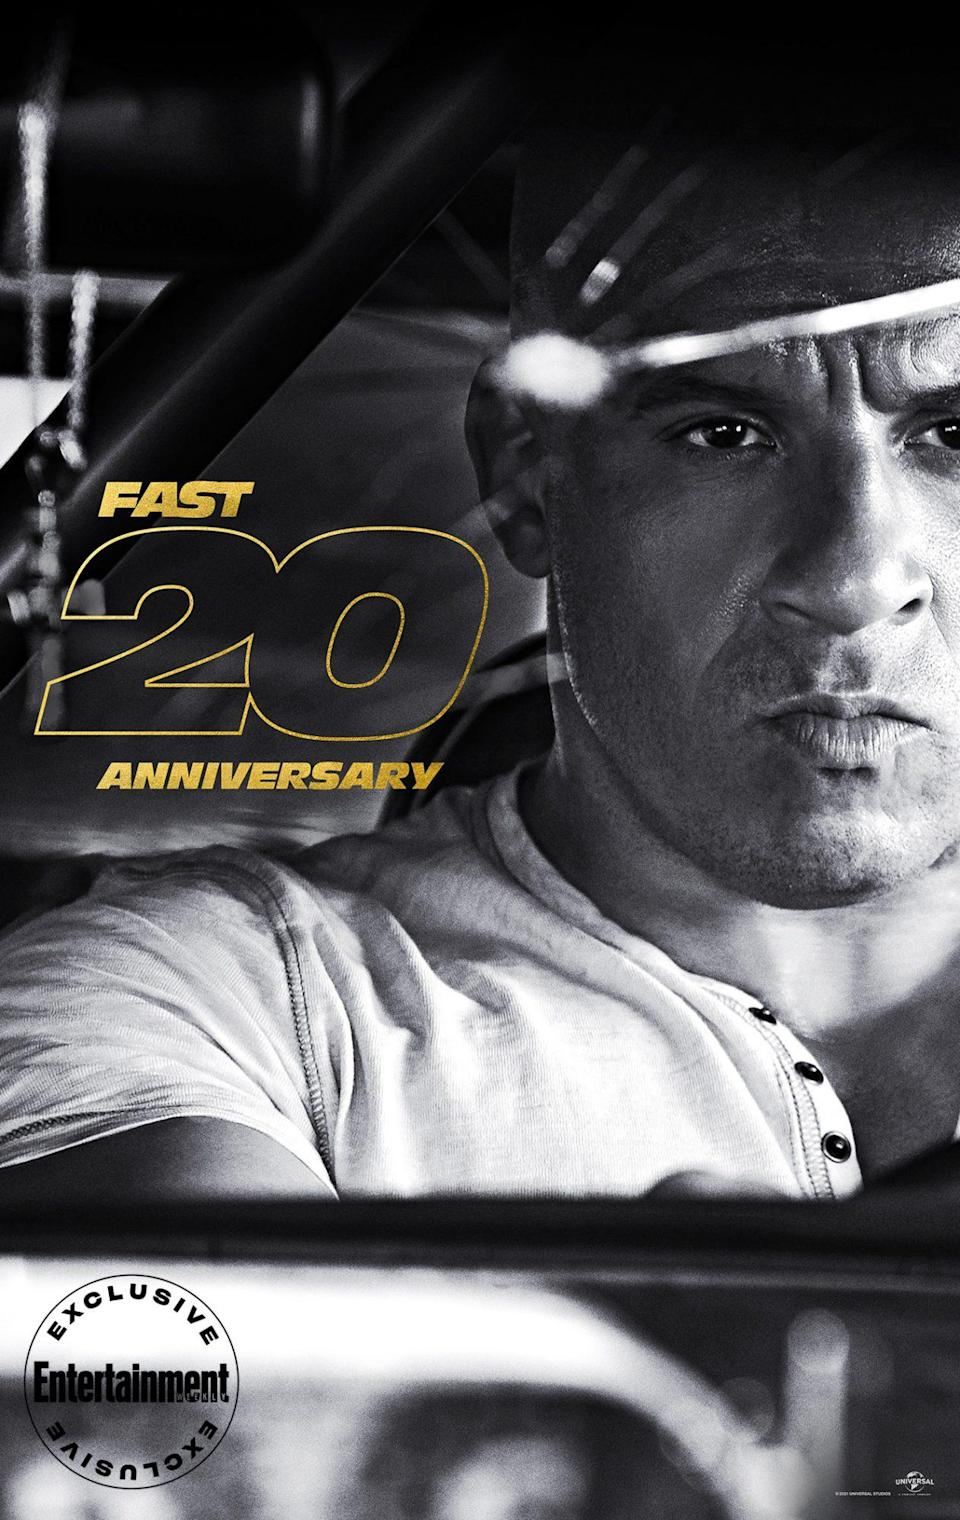 """<p>Diesel is just as surprised as anyone about <em>Fast</em>'s longevity<em>,</em> considering he walked away after <em>The Fast and the Furious</em>, thinking a sequel would hurt the legacy of the original. But he returned as Dom in the final scene of <em>The Fast and the Furious: Tokyo Drift</em>, and has never looked back. """"To be the vessel of a character to this degree for decades, what you end up finding is that you're pulling from your real life - it becomes that personal,"""" <a href=""""https://ew.com/movies/f9-vin-diesel-john-cena-digital-cover/"""" rel=""""nofollow noopener"""" target=""""_blank"""" data-ylk=""""slk:he recently told EW"""" class=""""link rapid-noclick-resp"""">he recently told EW</a>. """"It's like when Paul used to say how much he loved being called Brian. That means for so long he's played this character, he's adopted part of the character and the character's adopted part of him. And maybe in this <em>Fast</em> universe, as complicated as it is, life is a little simpler.""""</p>"""